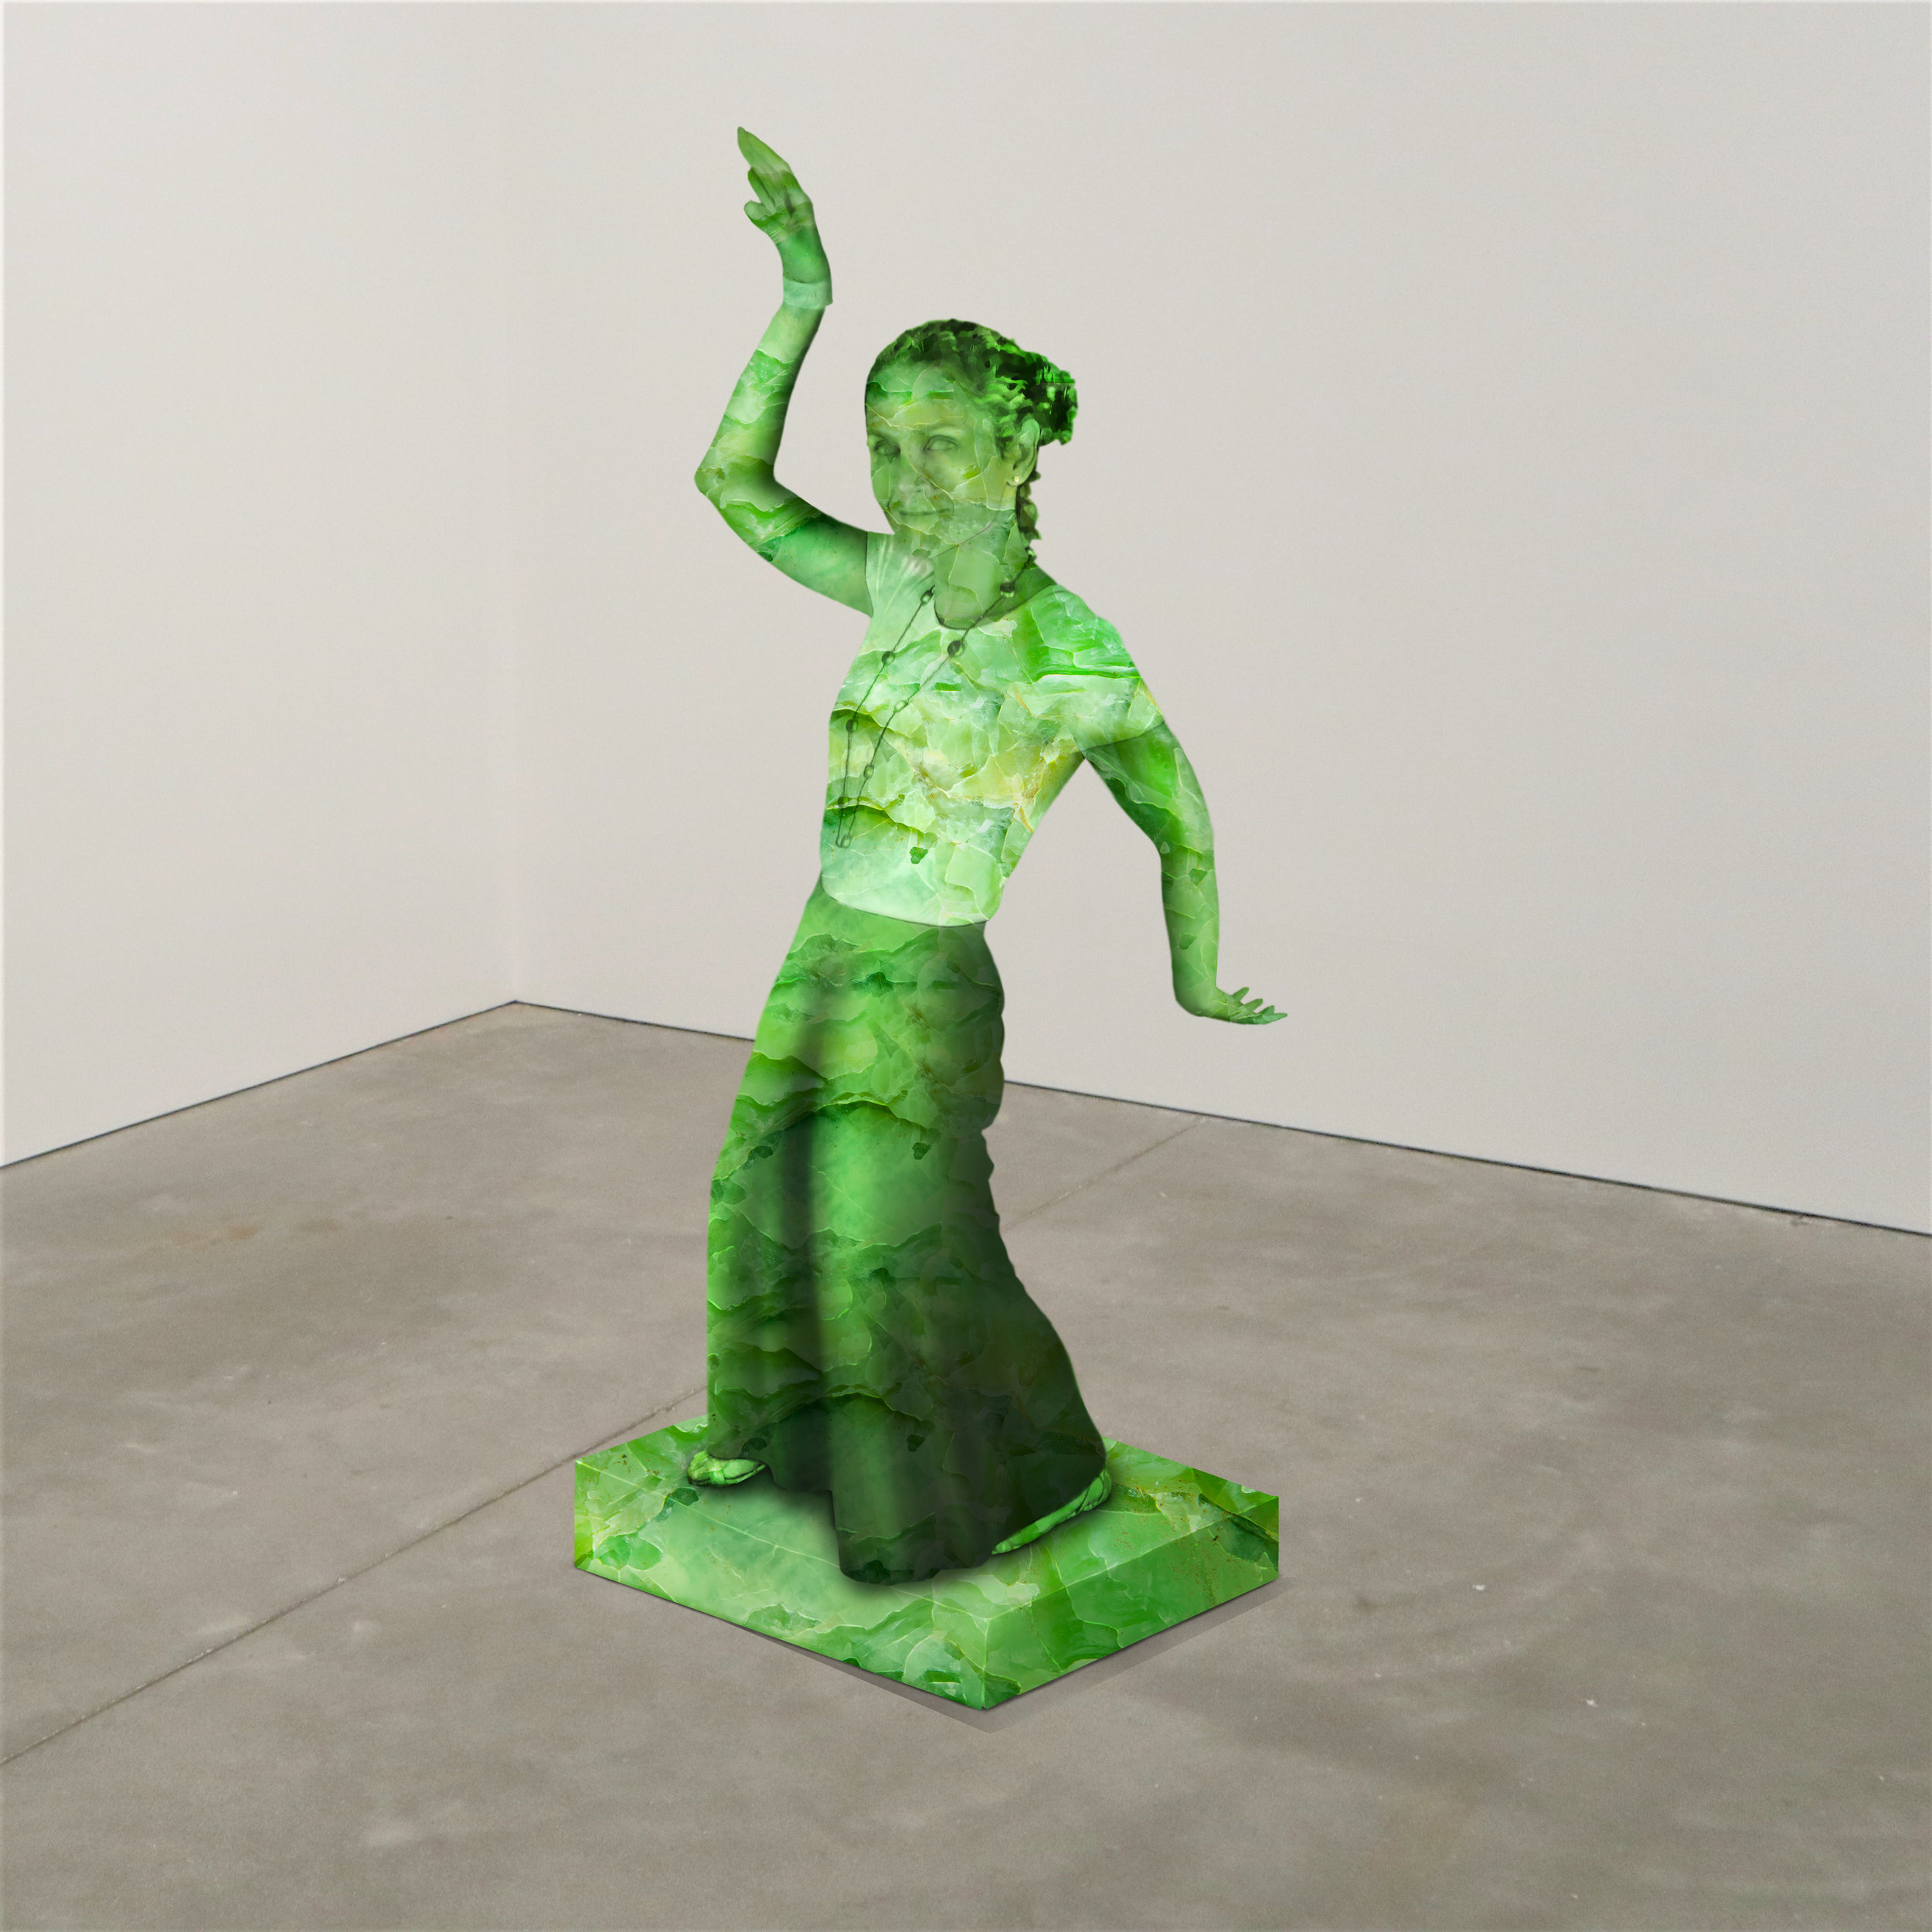 """SOUTH AMERICAN GREAT AGAIN,"" jade, Institute of Contemporary Art, Boston   2018  JPG  During an installation at the Institute of Contemporary Art in Boston, viewers were invited to imagine themselves as statues in the ICA's permanent collection. Participants were photographed posing as a statue they felt represented themselves, created a name for their fictional statue, and selected a stone from which their statue would be made. Professional and amateur digital artists were commissioned to create renderings of the statues, which were superimposed on photos of the ICA's permanent collection gallery space."